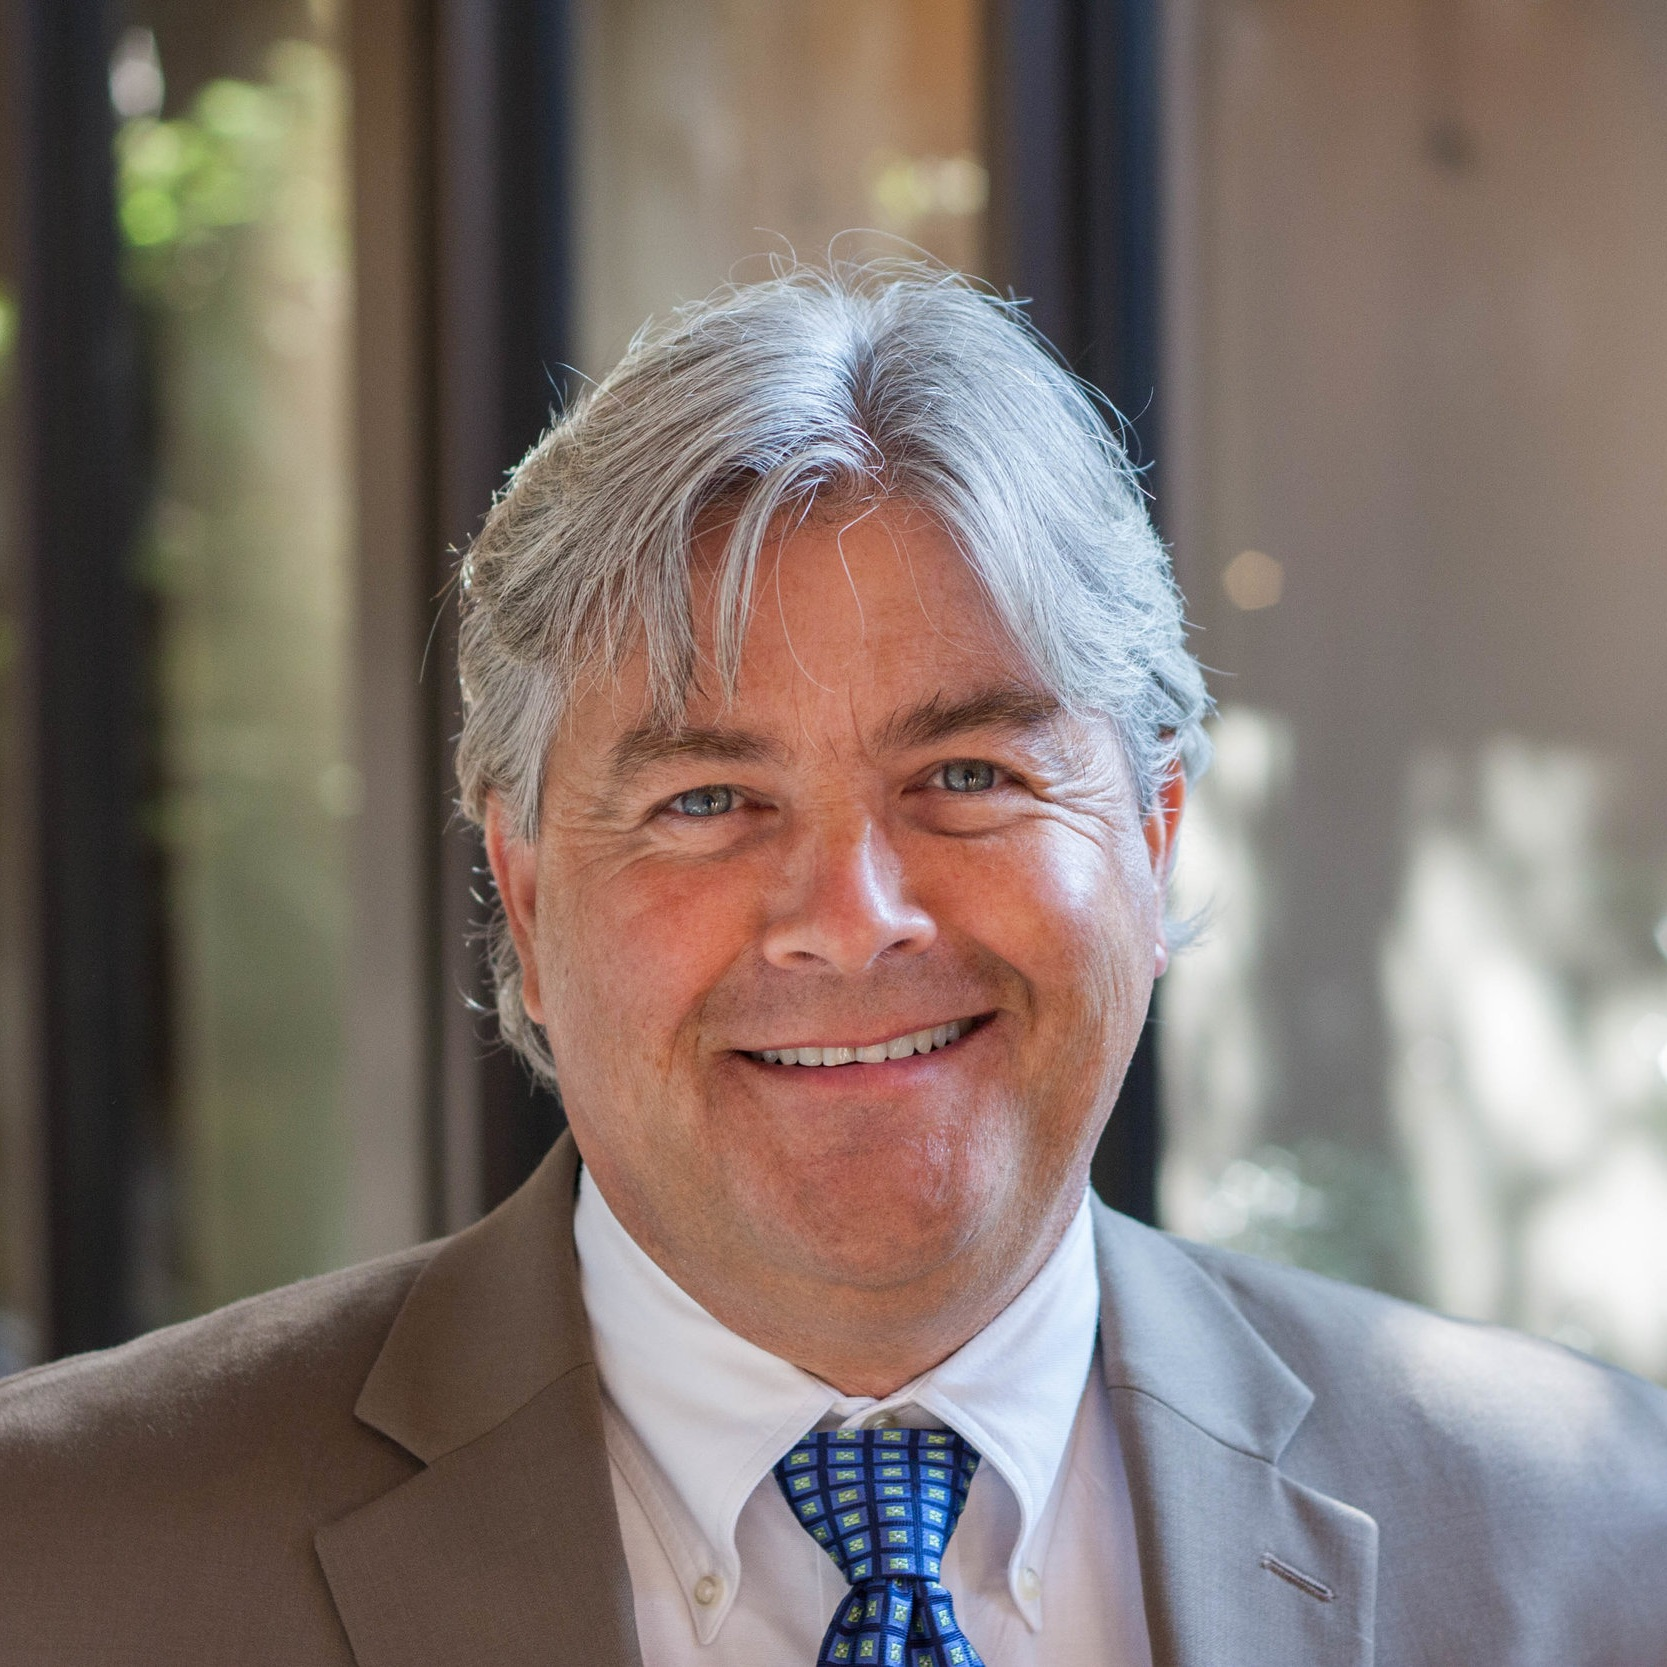 Pat Harcourt, PE - CEO, principalPat Harcourt serves as a Principal and CEO of A2H. Throughout his 30-year career, he has provided project management, engineering design, and consulting services for site improvement, infrastructure, and community development projects across the Mid-South. Pat has coordinated with state and federal agencies on projects across a diverse range of markets — including water and sewer utilities, environmental facilities, parks, public municipal buildings, commercial, industrial, education, and healthcare facilities.